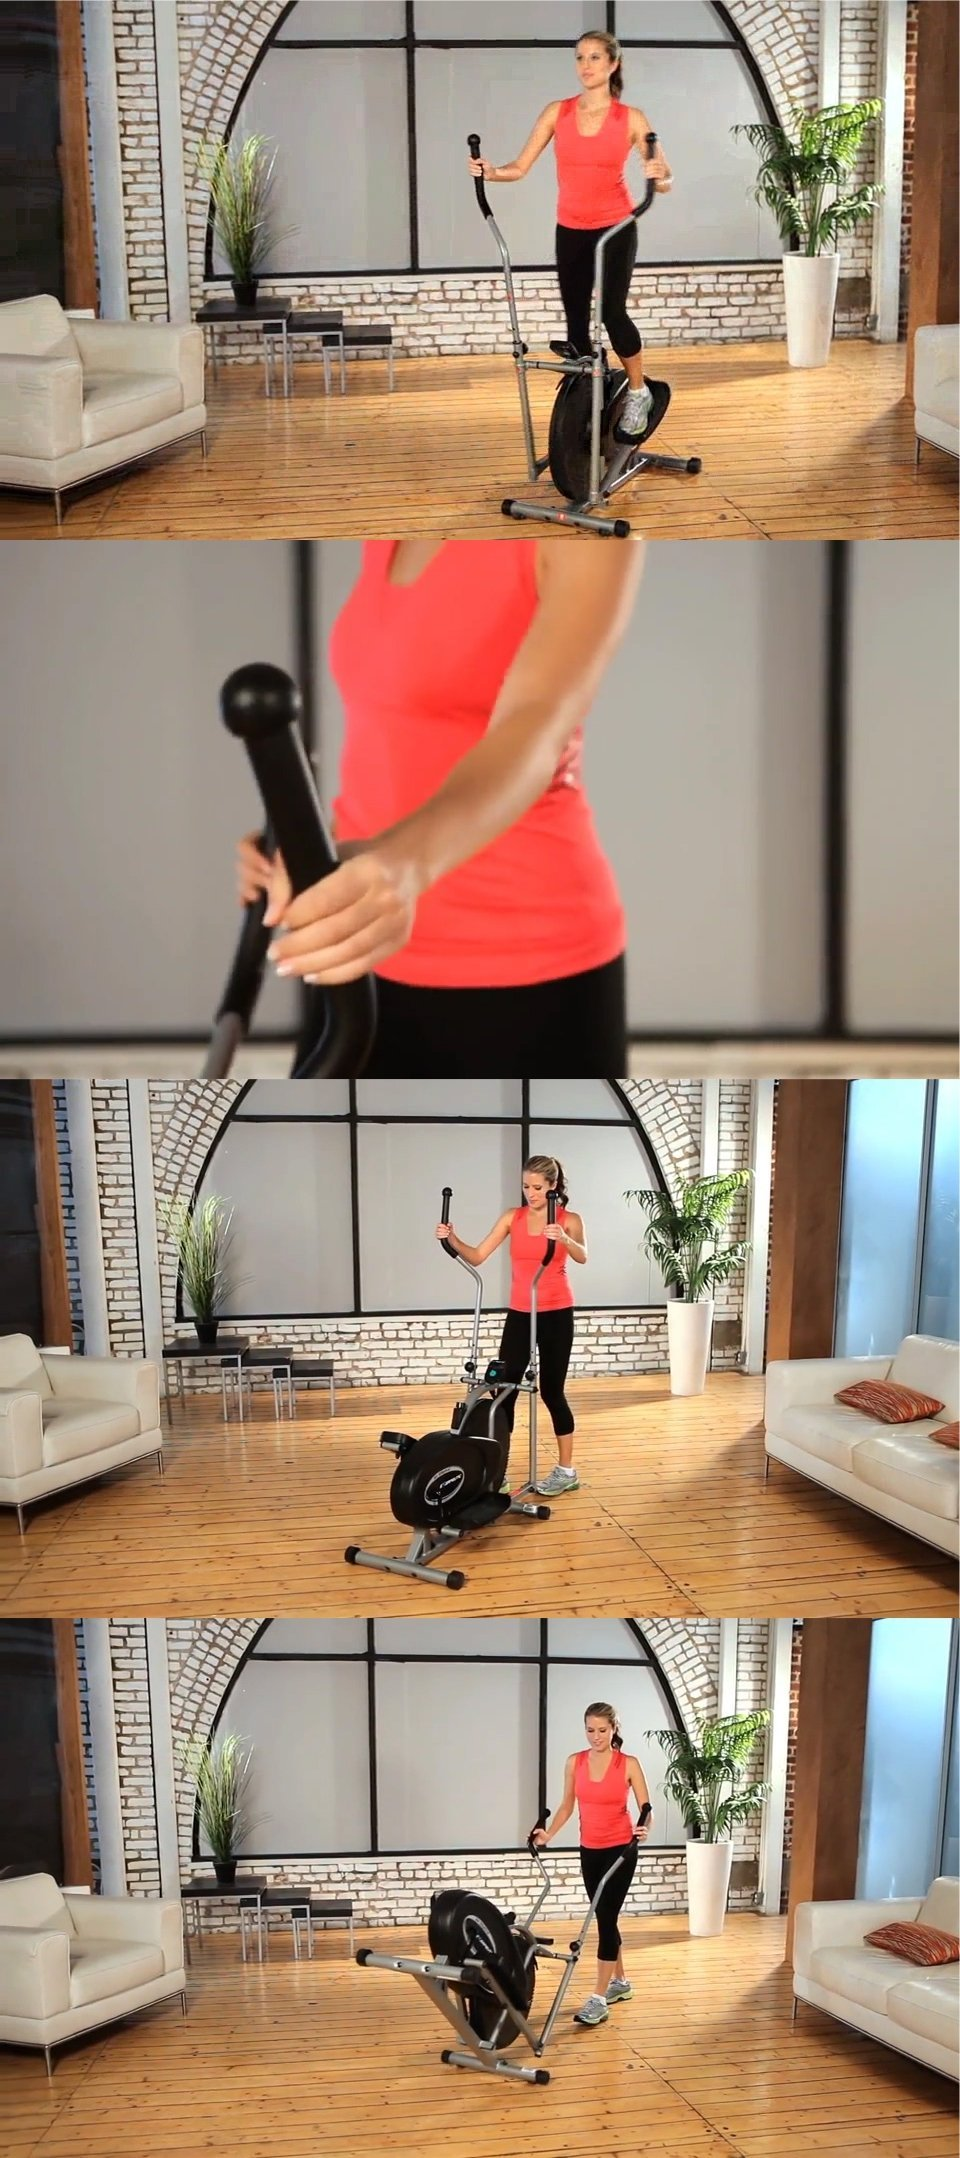 New super plus - Air Elliptical - 2 year warranty by Exerpeutic (Image #5)